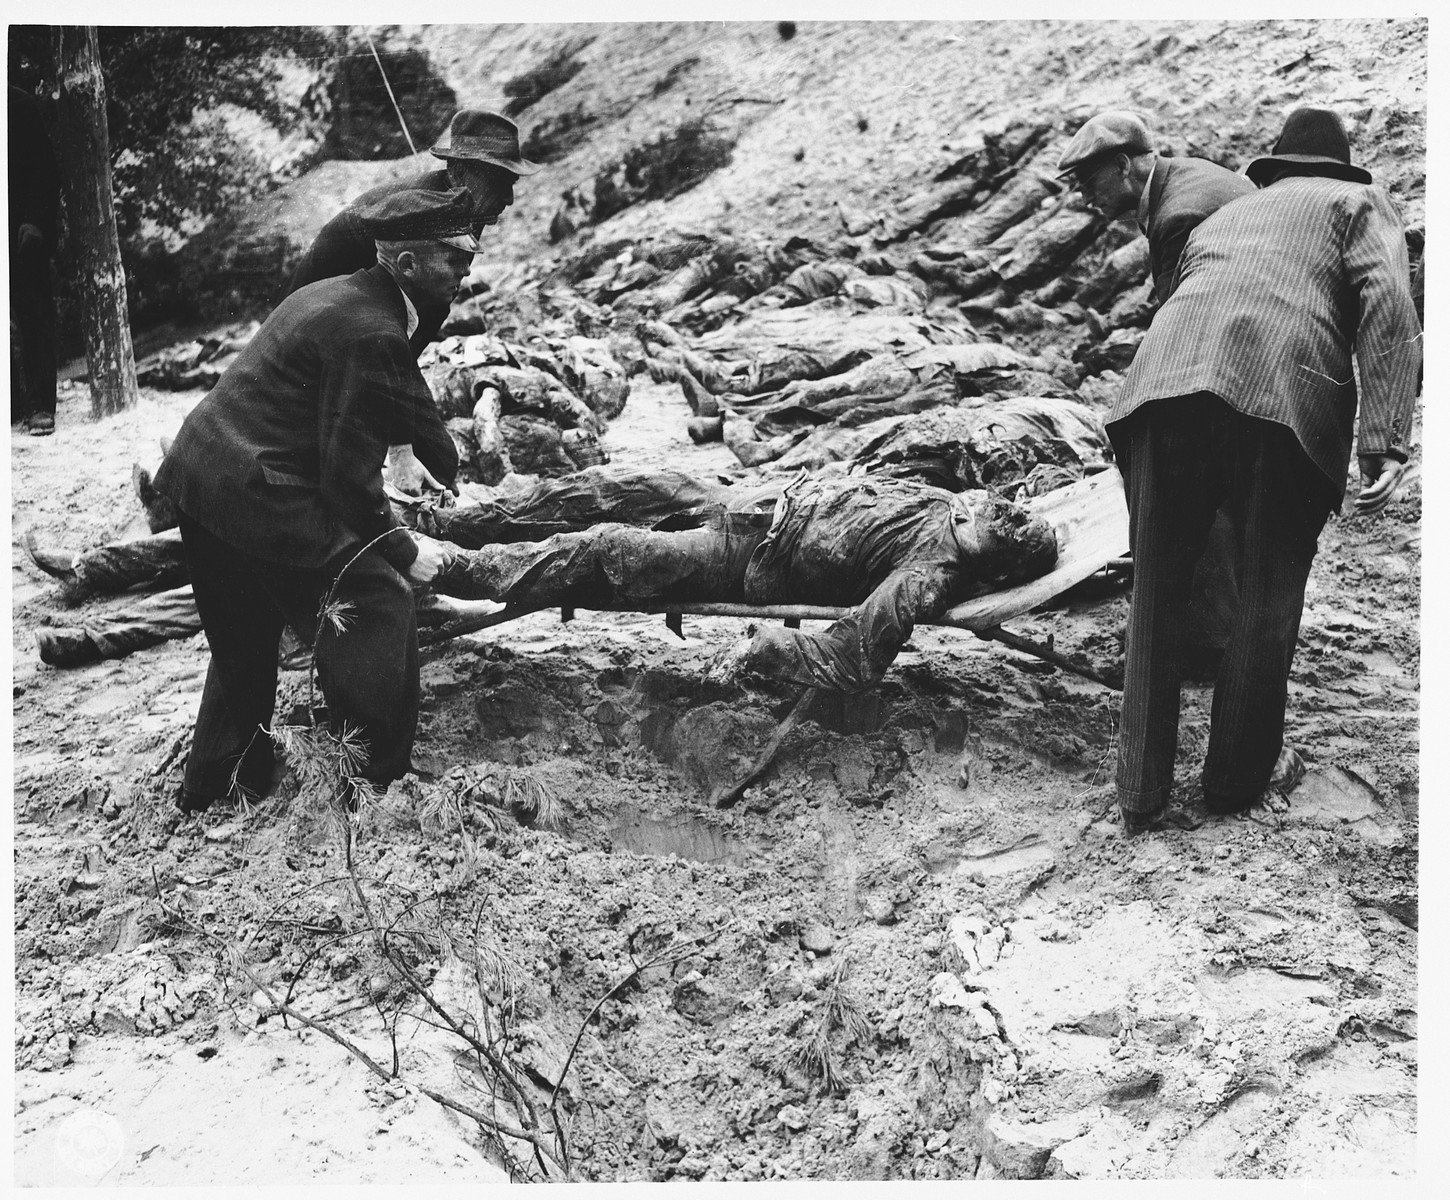 Under the supervision of American soldiers, German civilians exhume the bodies of 71 political prisoners from a mass grave on Wenzelnberg near Solingen-Ohligs.    The victims, most of whom were taken from Luettringhausen prison, were shot and buried by the Gestapo following orders to eliminate all Reich enemies just before the end of the war.